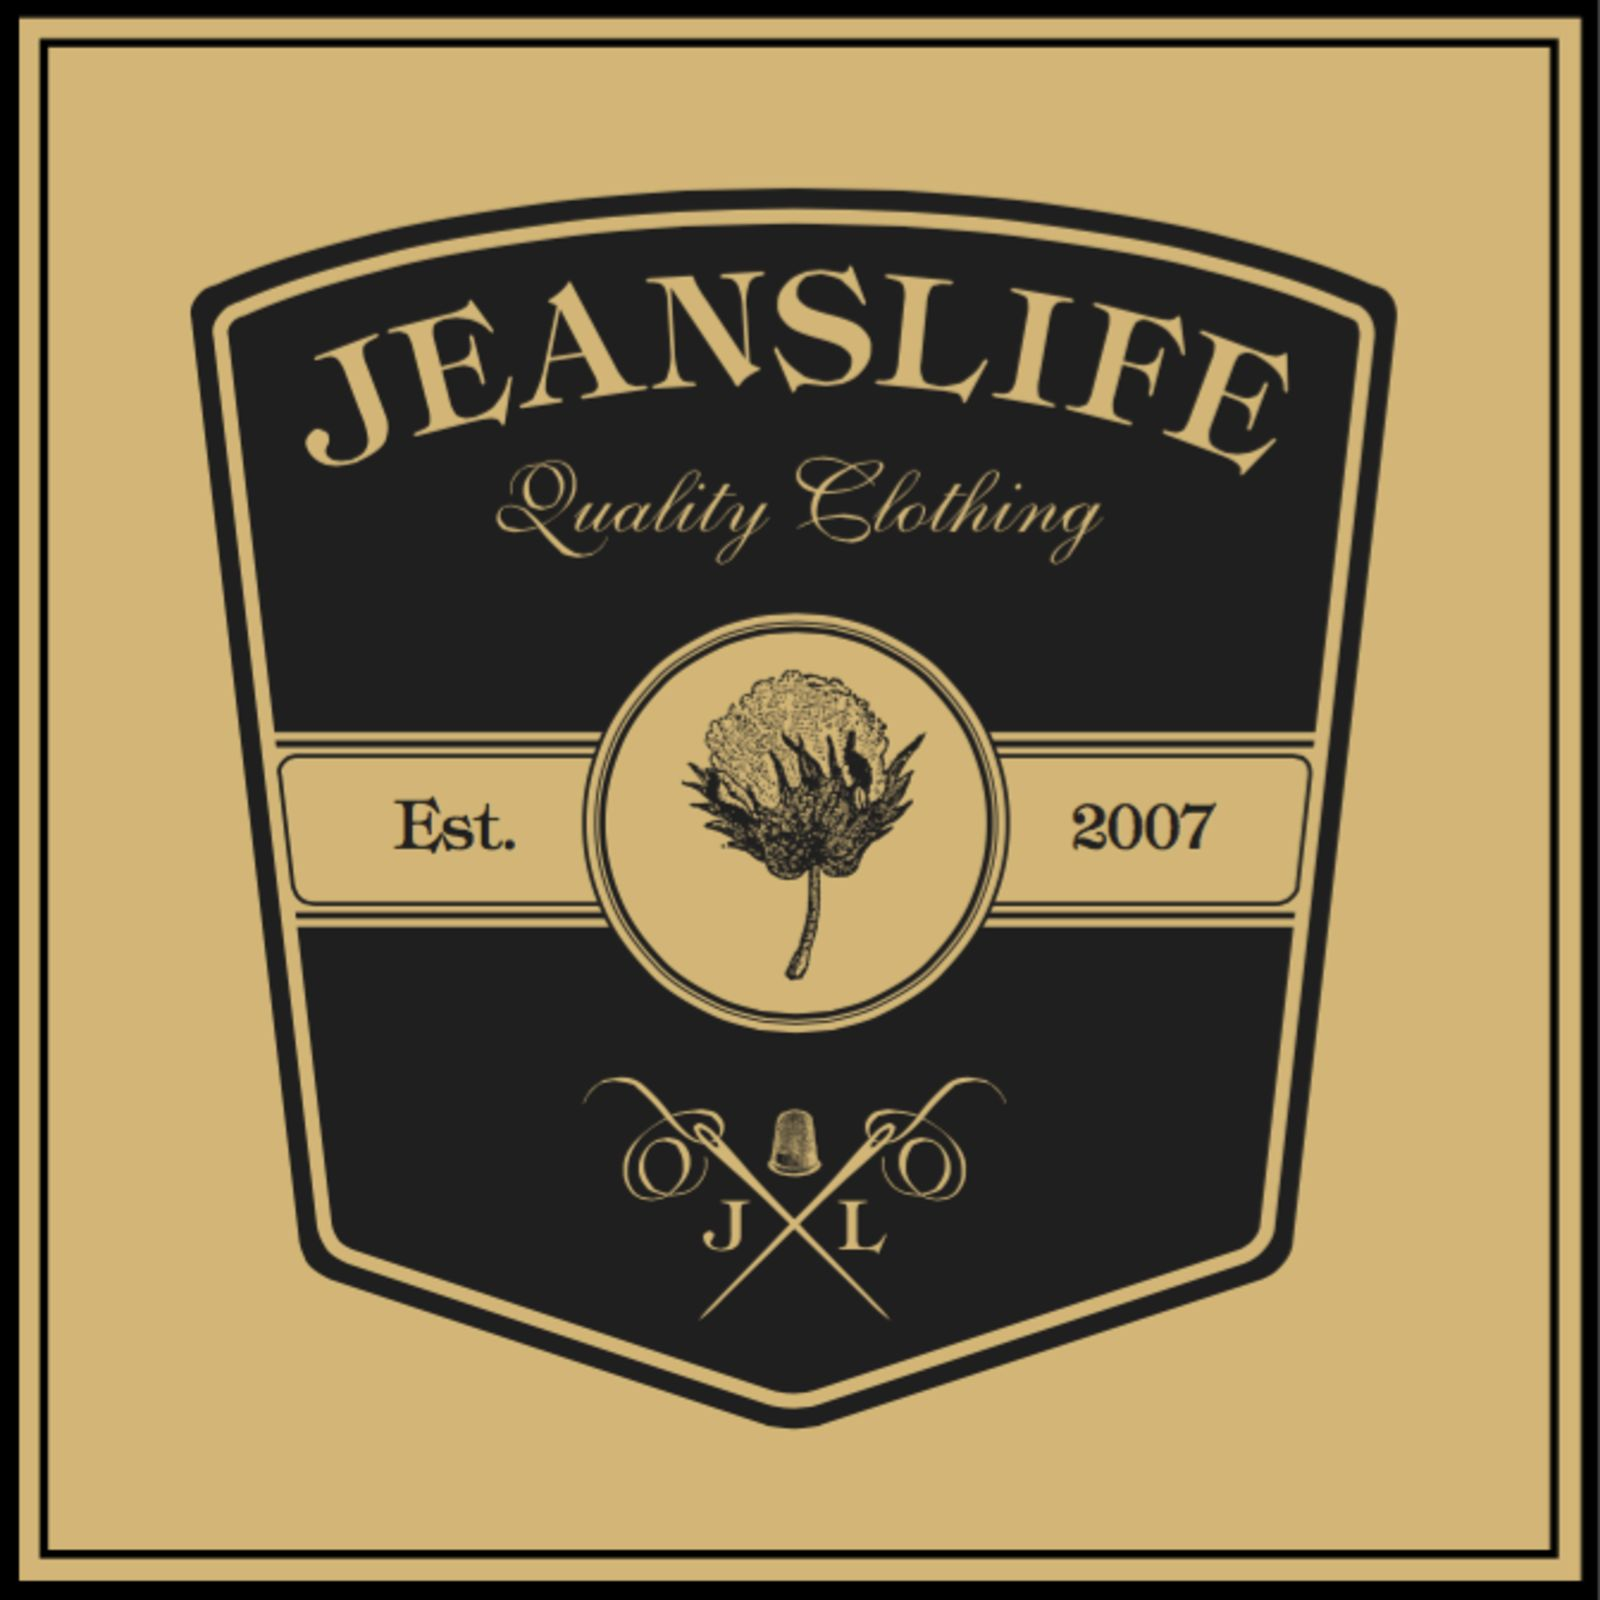 Jeanslife a Winterthur (Image 1)